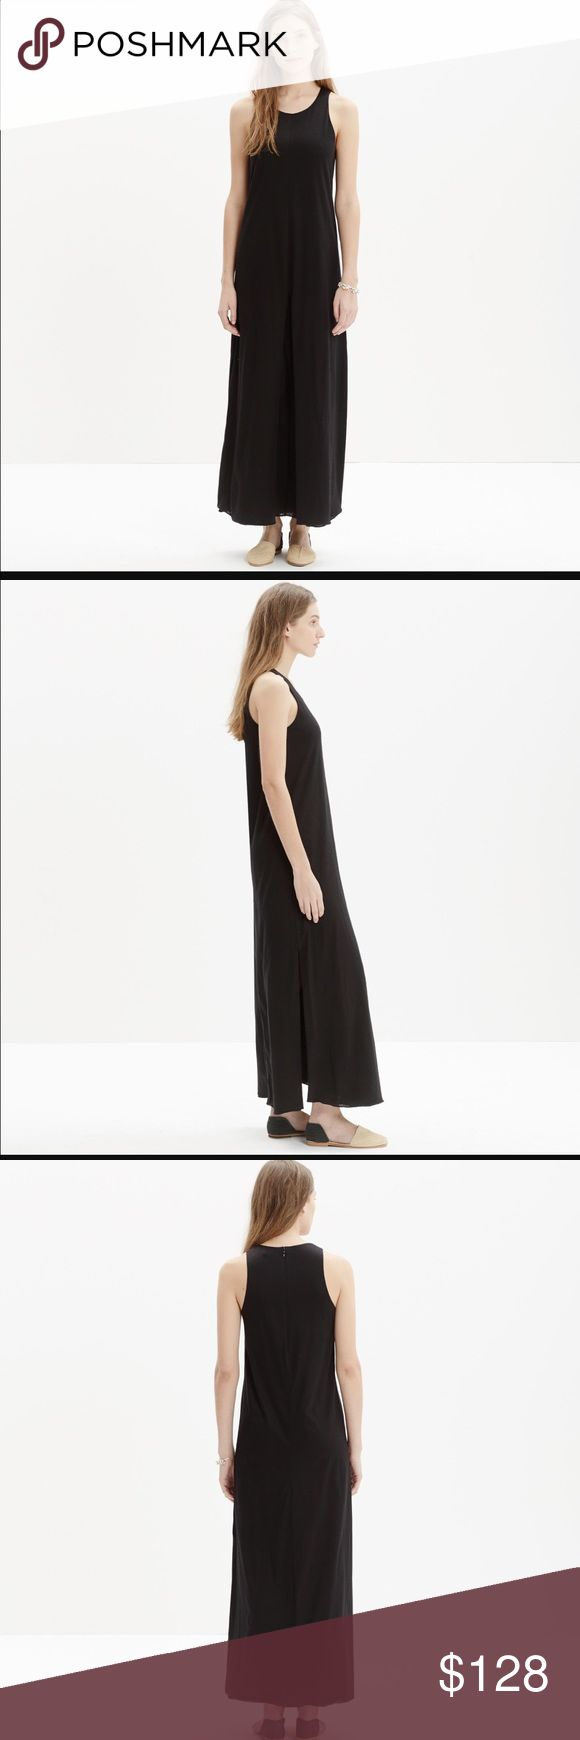 NWT Madewell black tank maxi dress Brand new with tags. Size 4. Features back zipper and slit hem. 100% cotton. Sold out in stores. Madewell Dresses Maxi